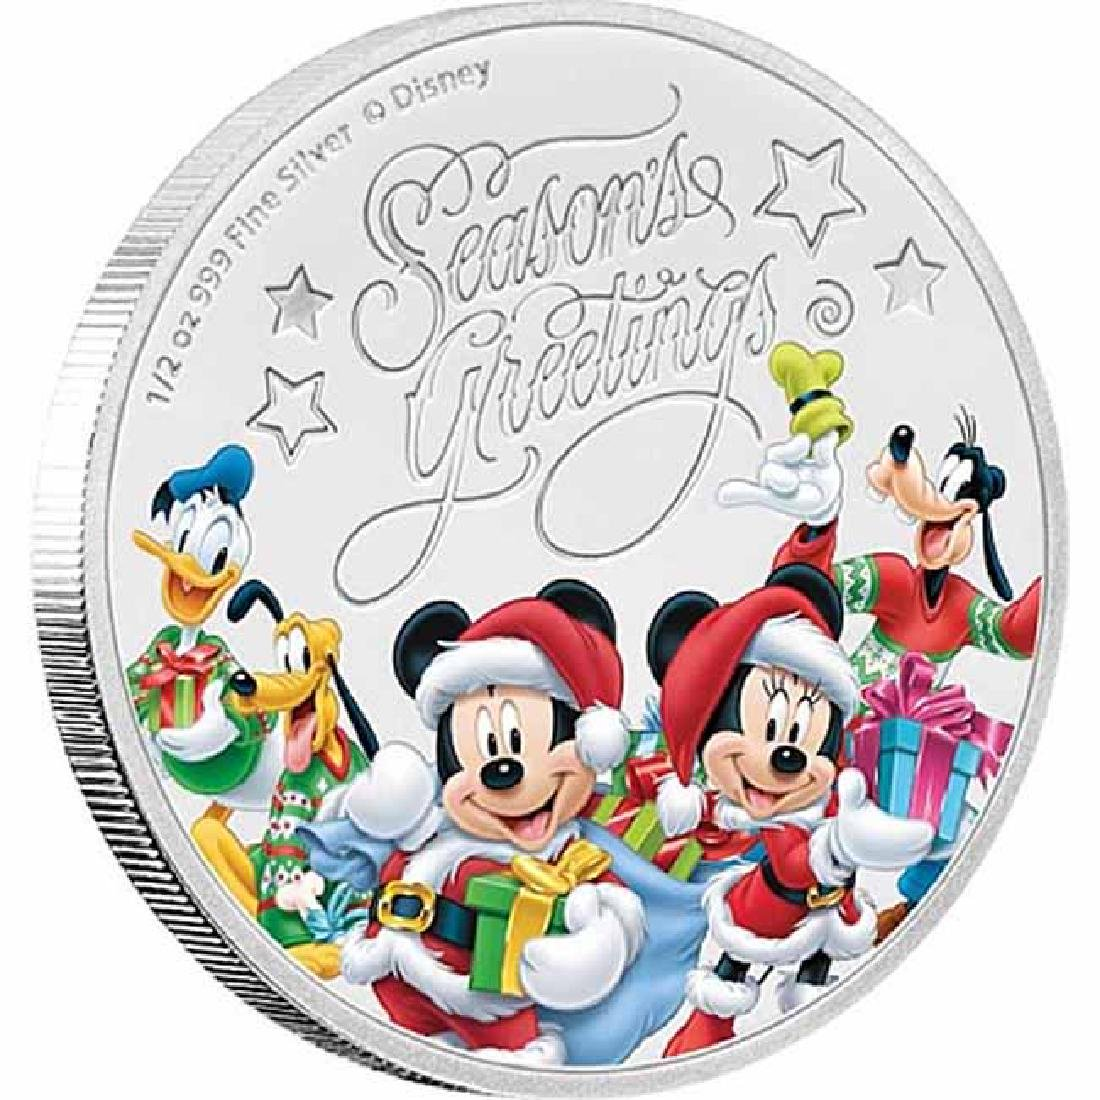 2017 1/2 oz Silver $1 Disney Seasons Greetings Proof